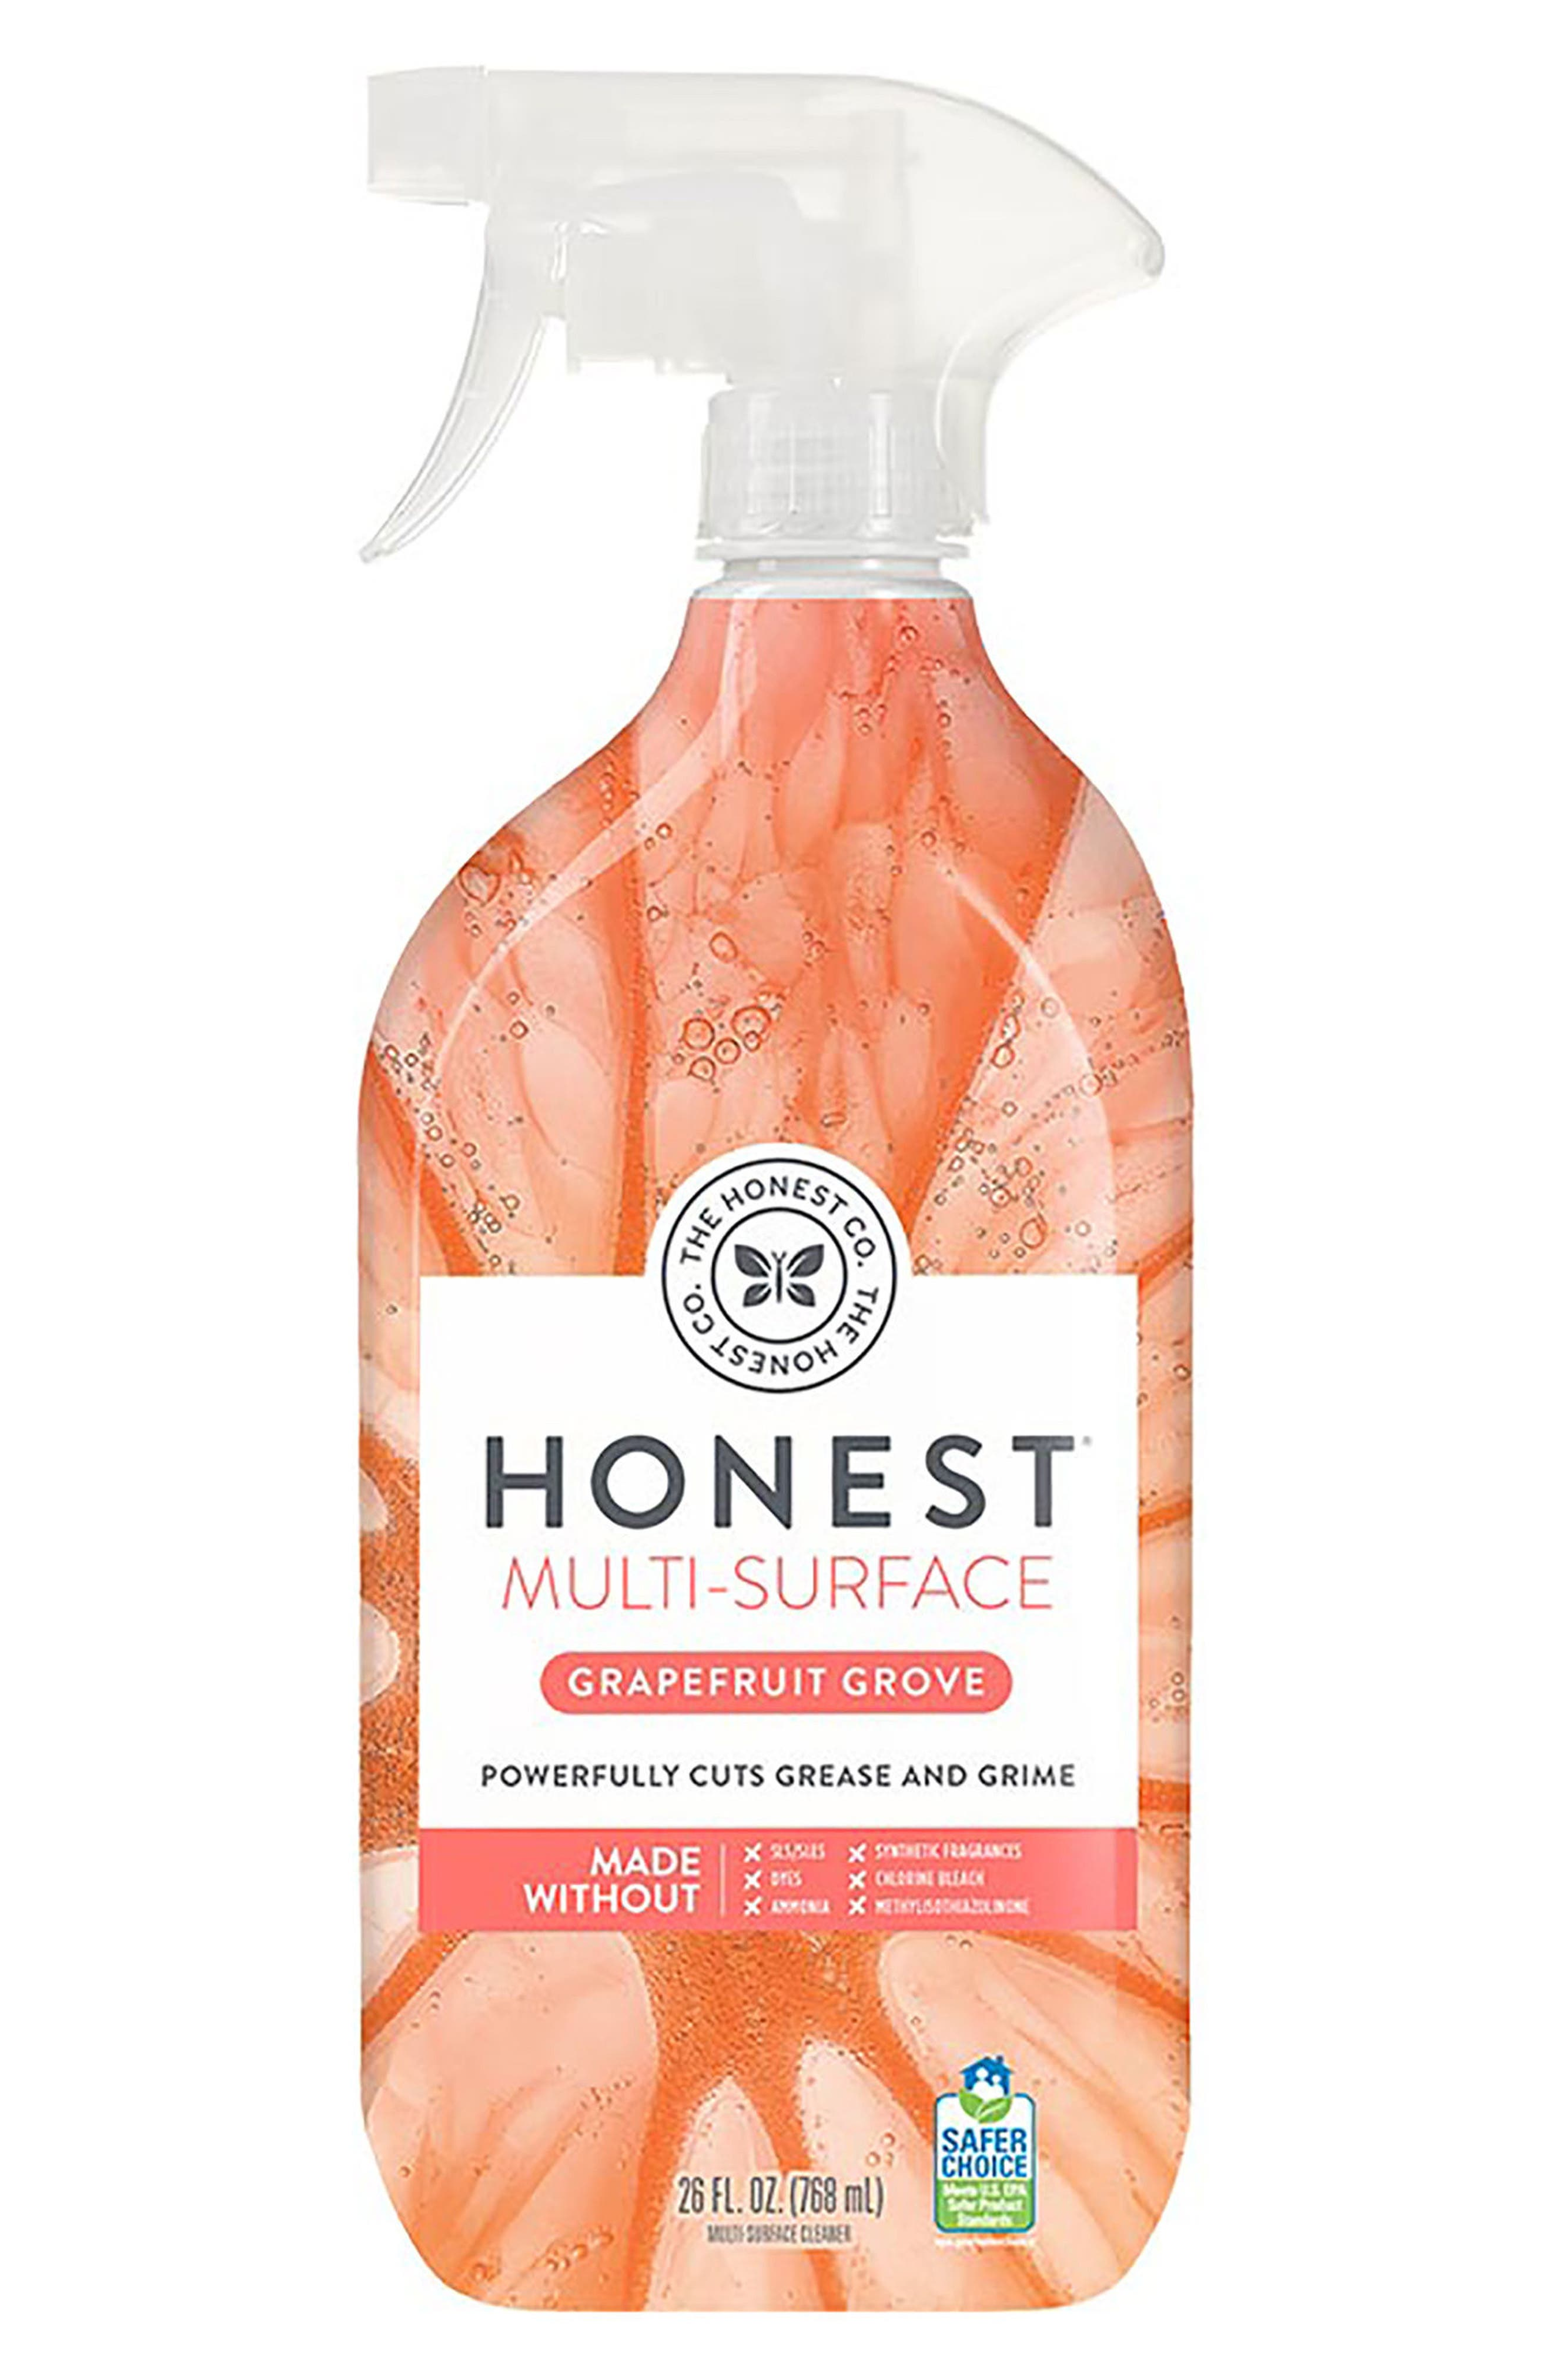 The Honest Company Grapefruit Grove Multi-Surface Cleaner